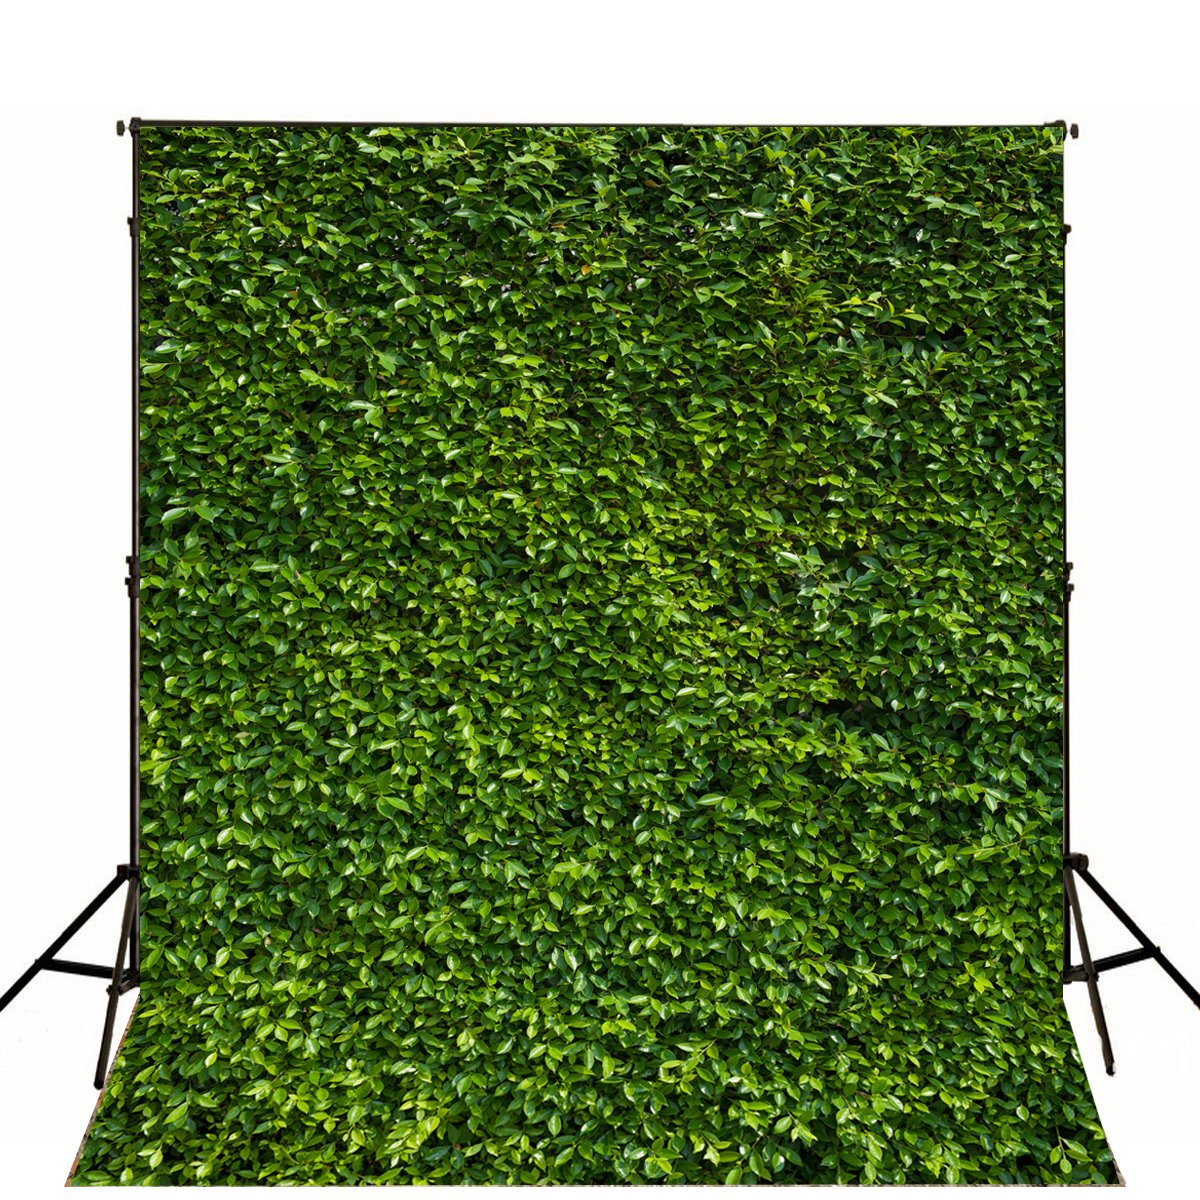 Kate 10x10ft Natural Green Lawn Party Photography Backdrop No wrinkles for Spring Background by Kate